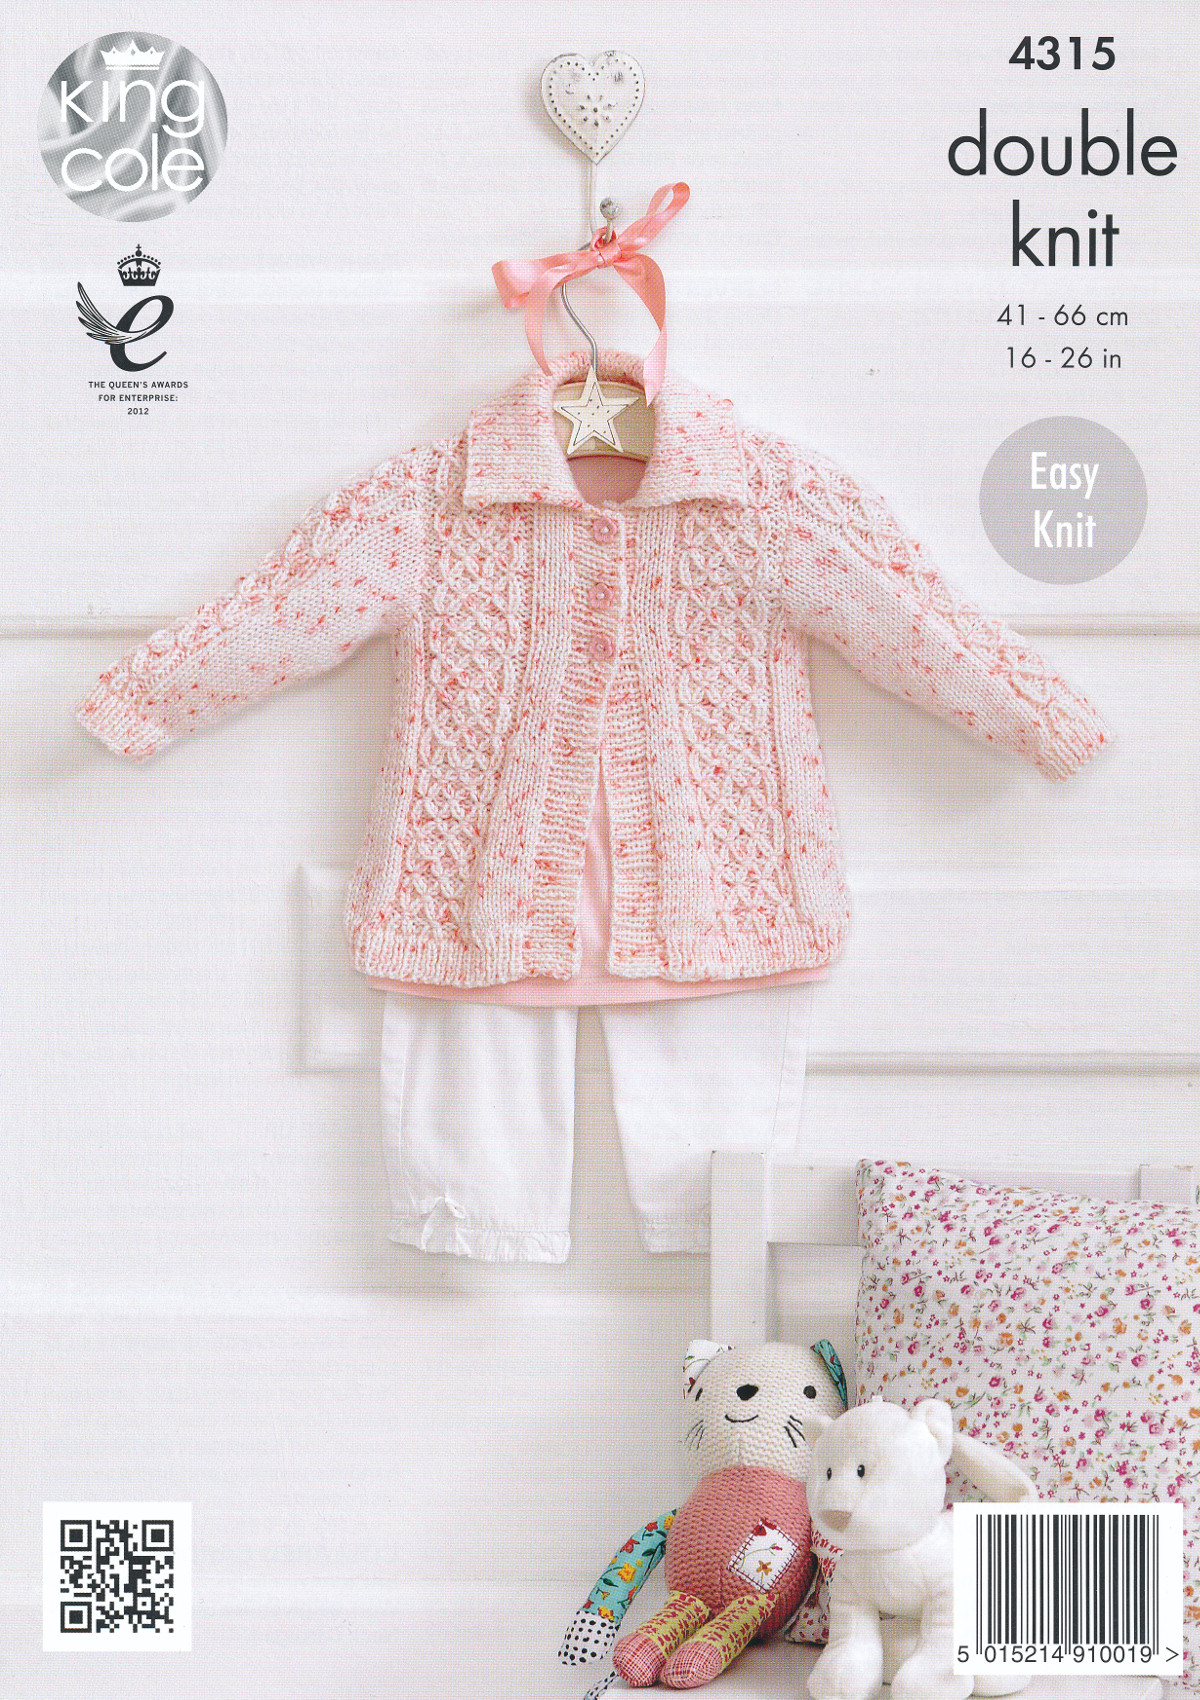 Free Baby Double Knitting Patterns : King Cole Double Knitting Pattern Baby Coat Collared Cardigan Hat Smarty DK 4...